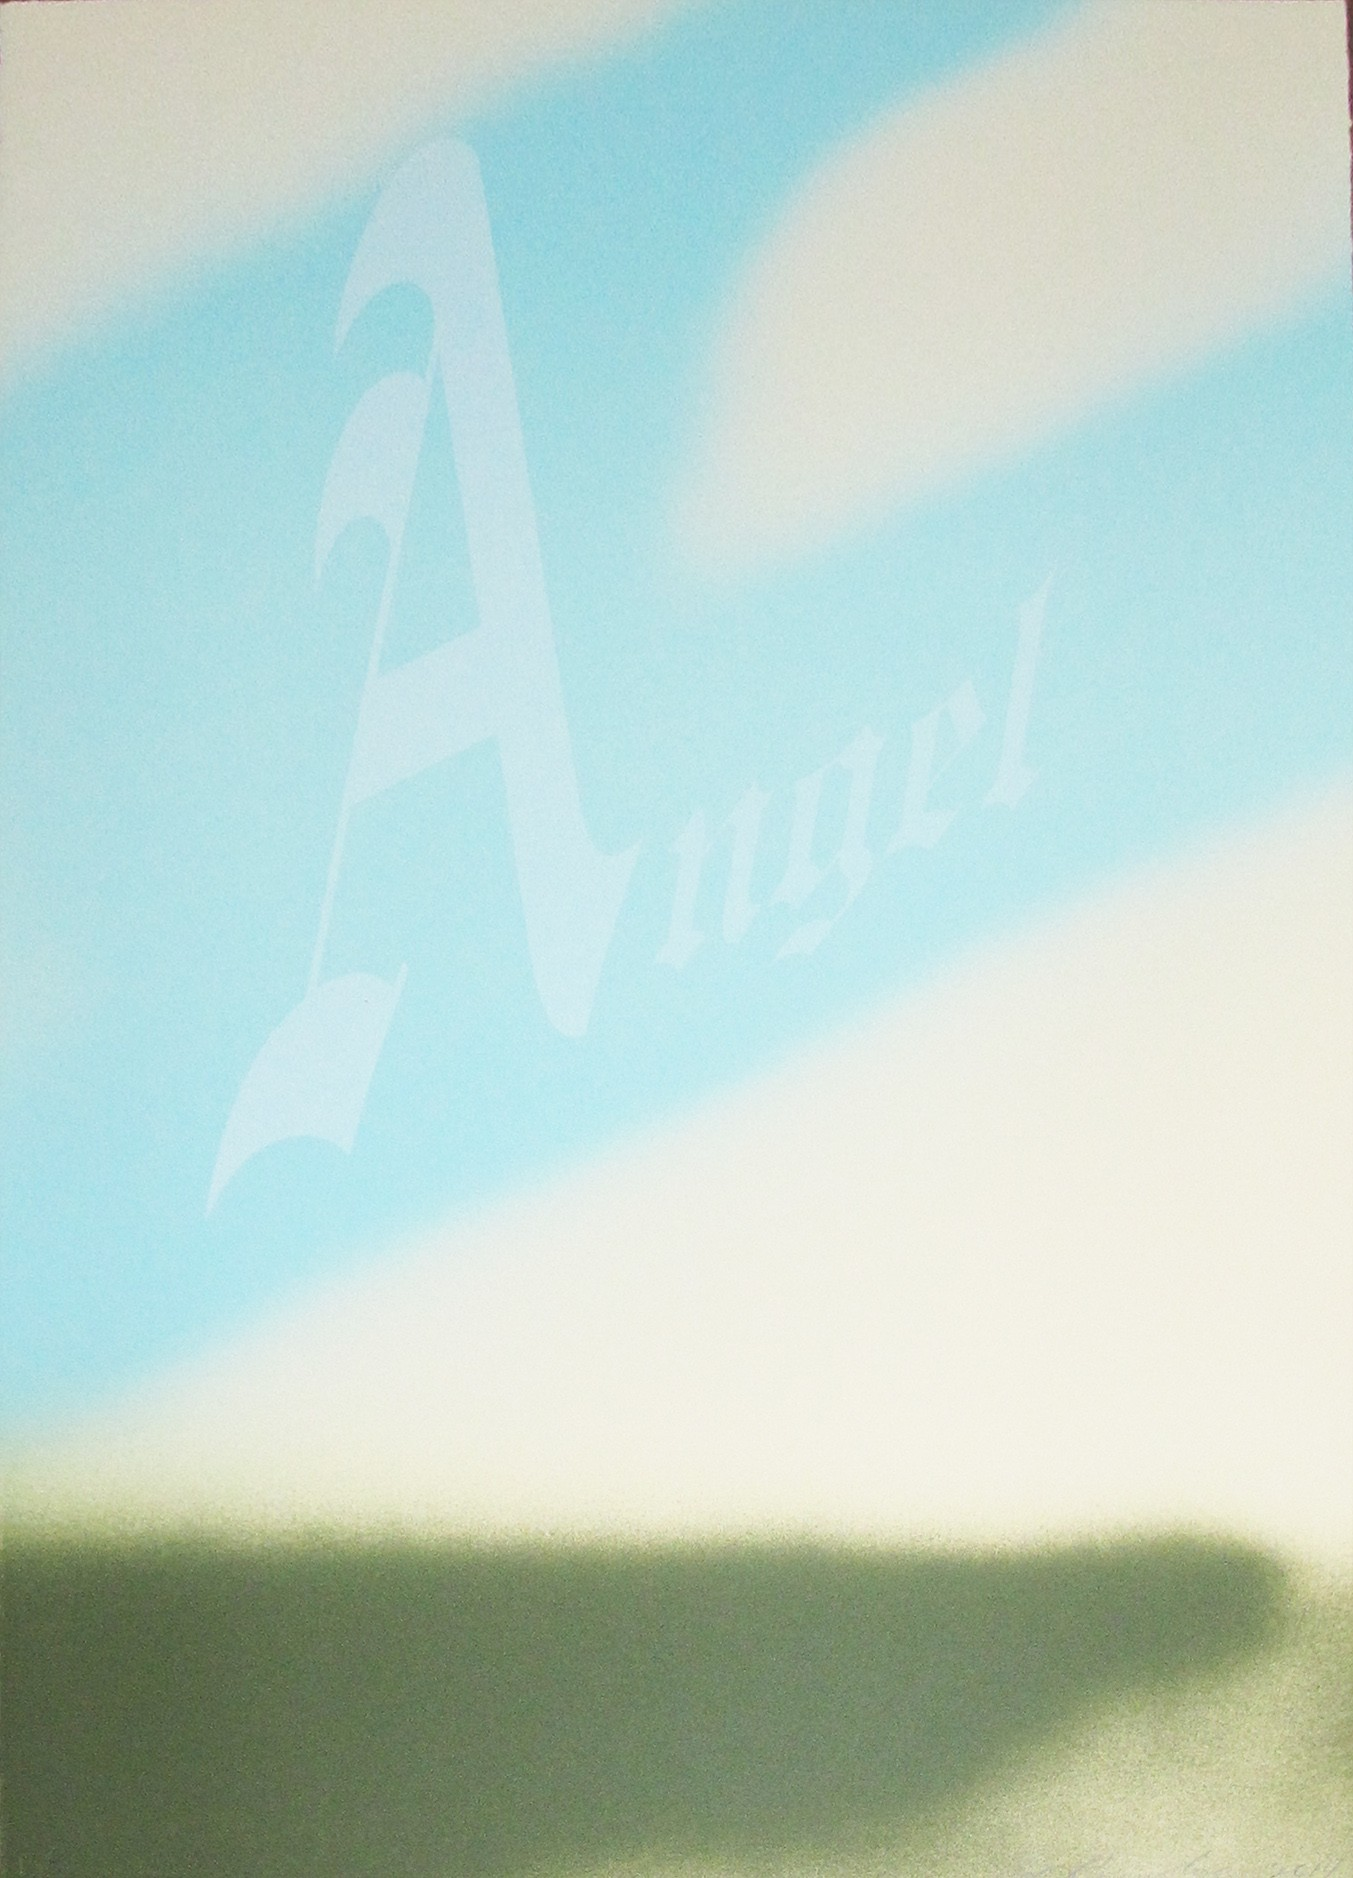 Ed Ruscha | Angel | 1967 | Image of Artists' work.